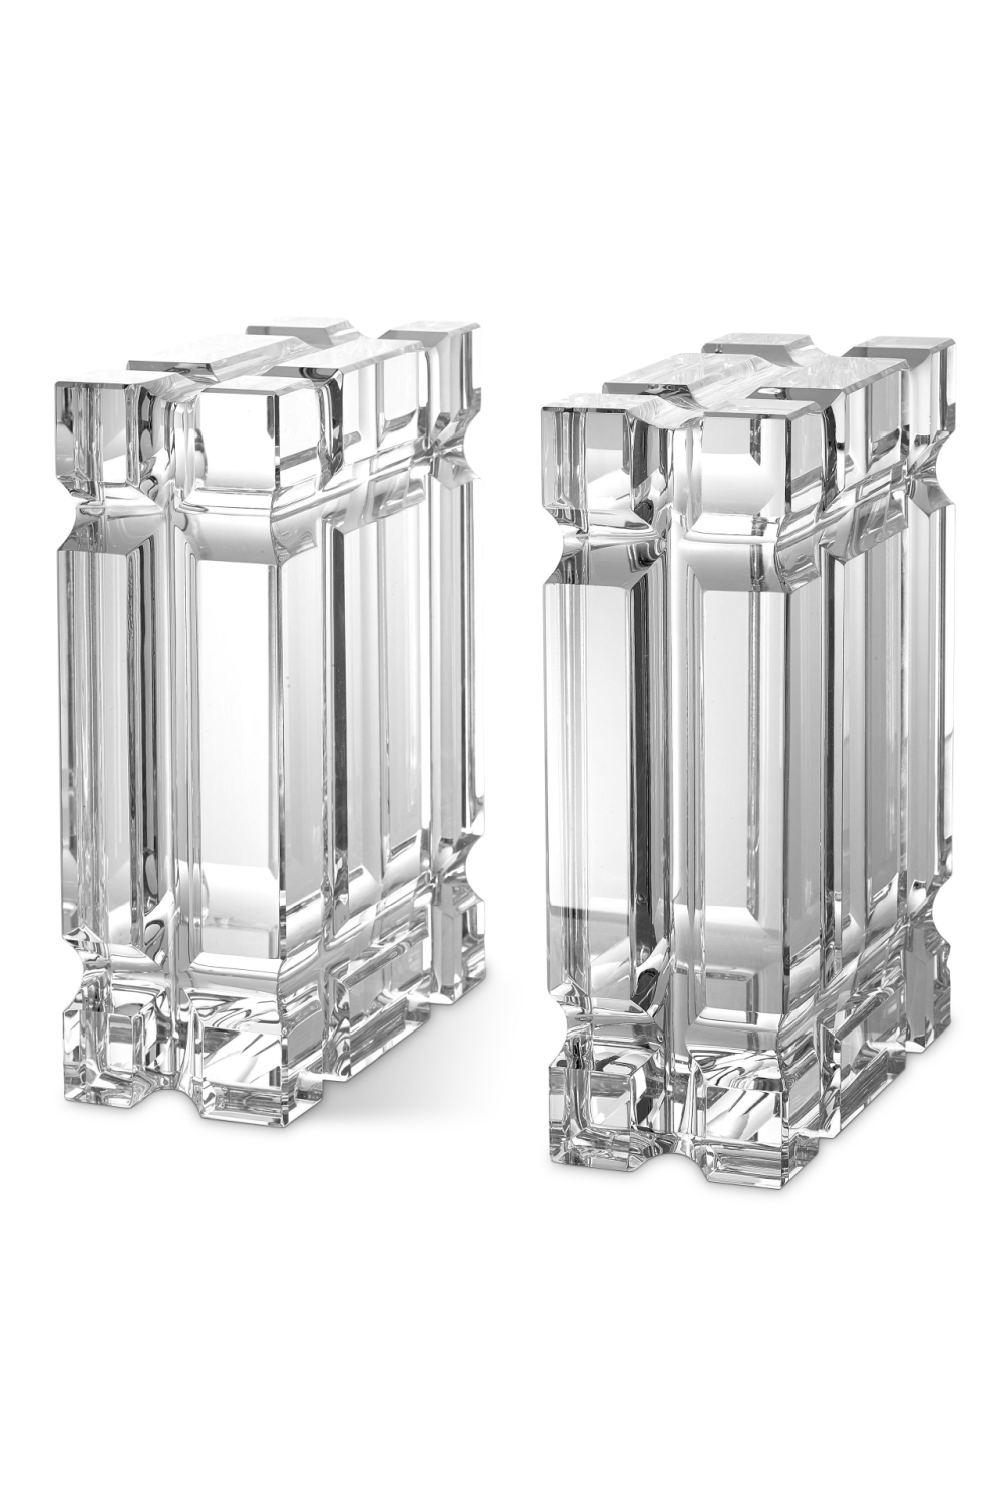 Glass Bookends set of 2 | Eichholtz Linea | #1 Eichholtz Online Retailer